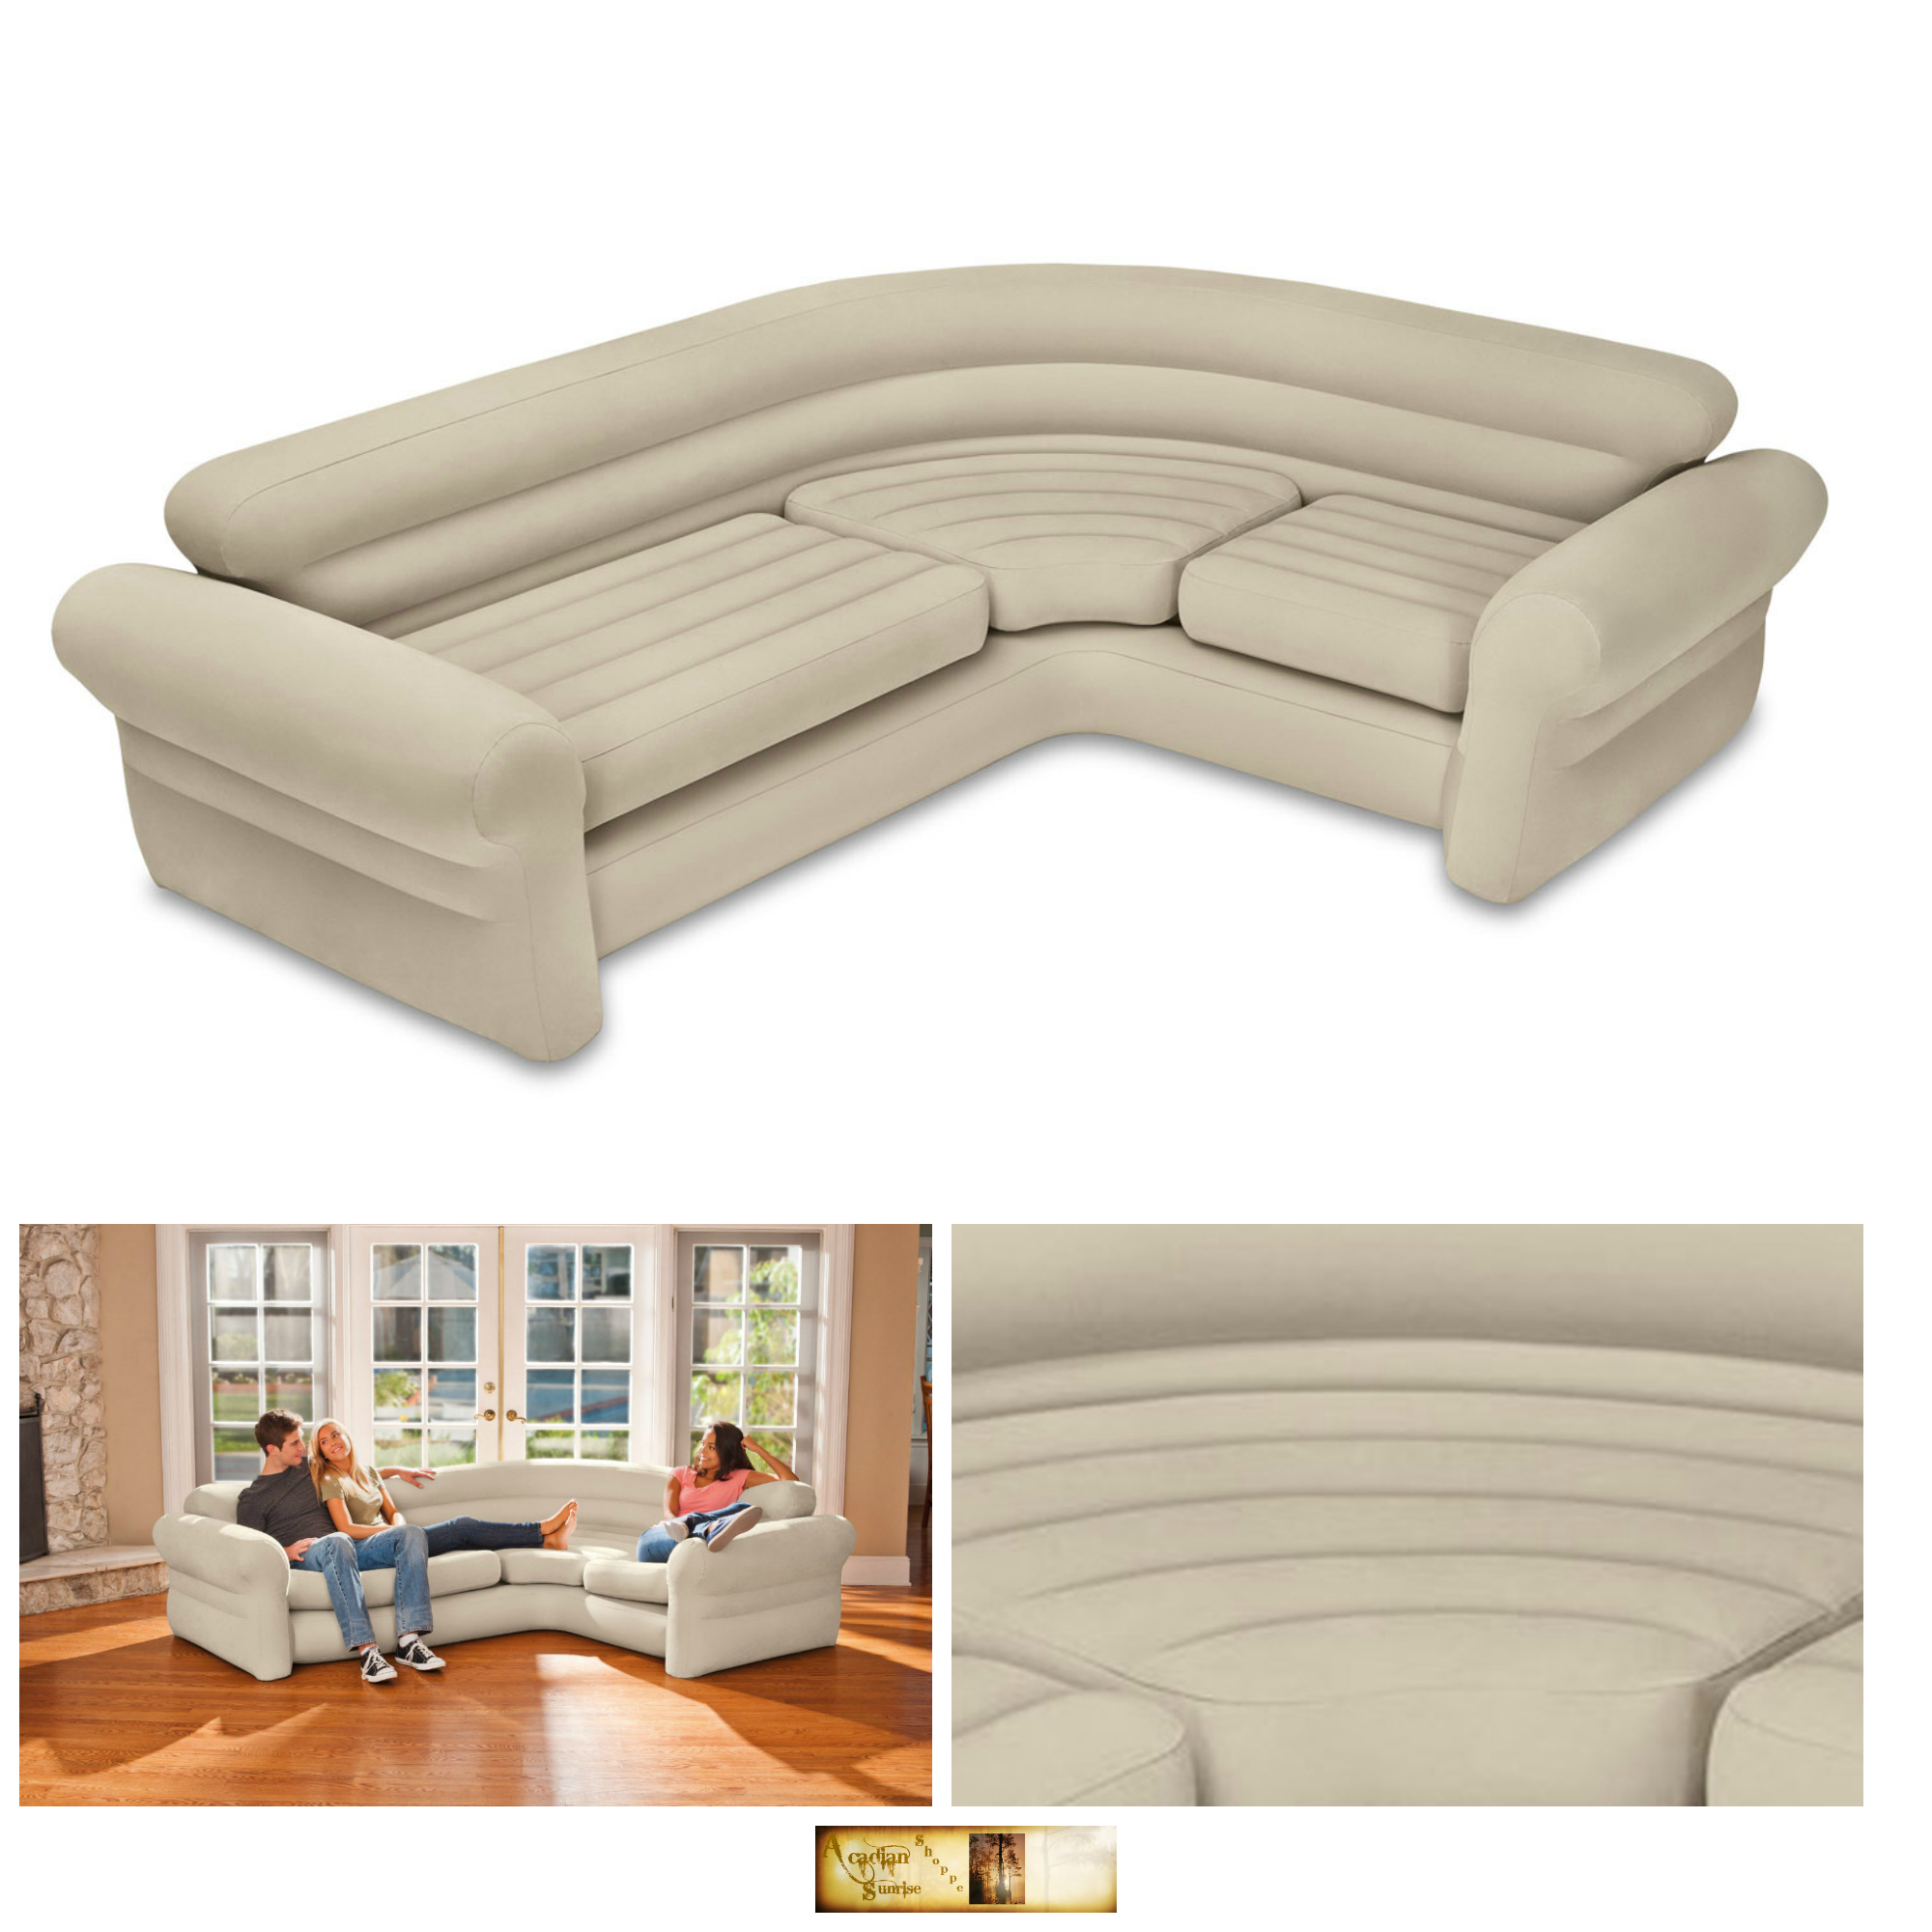 Astounding Details About Futon Bed Couch Sofa Sectional Sleeper Living Room Furniture Inflatable Loveseat Pabps2019 Chair Design Images Pabps2019Com